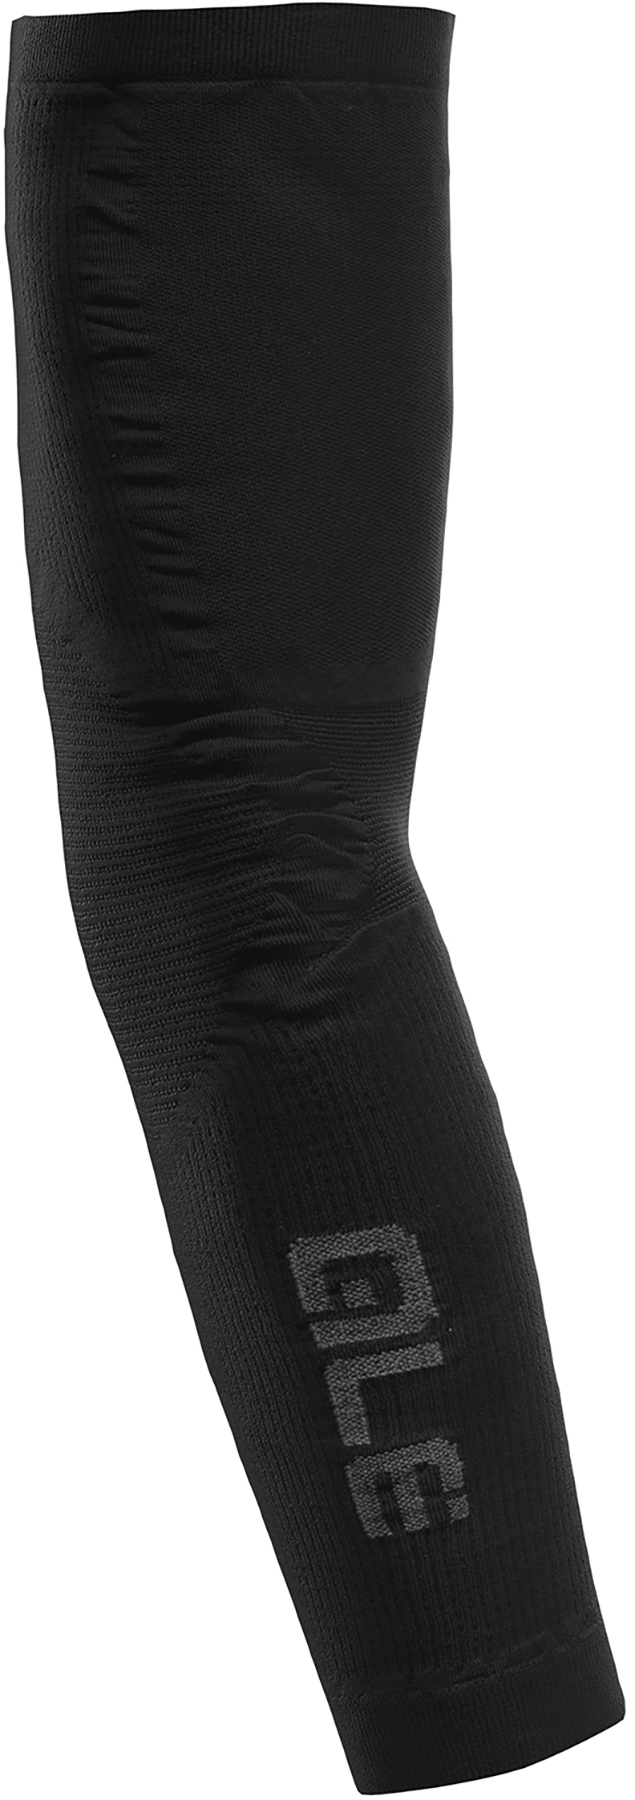 Alé Seamless Arm Warmers | Warmers